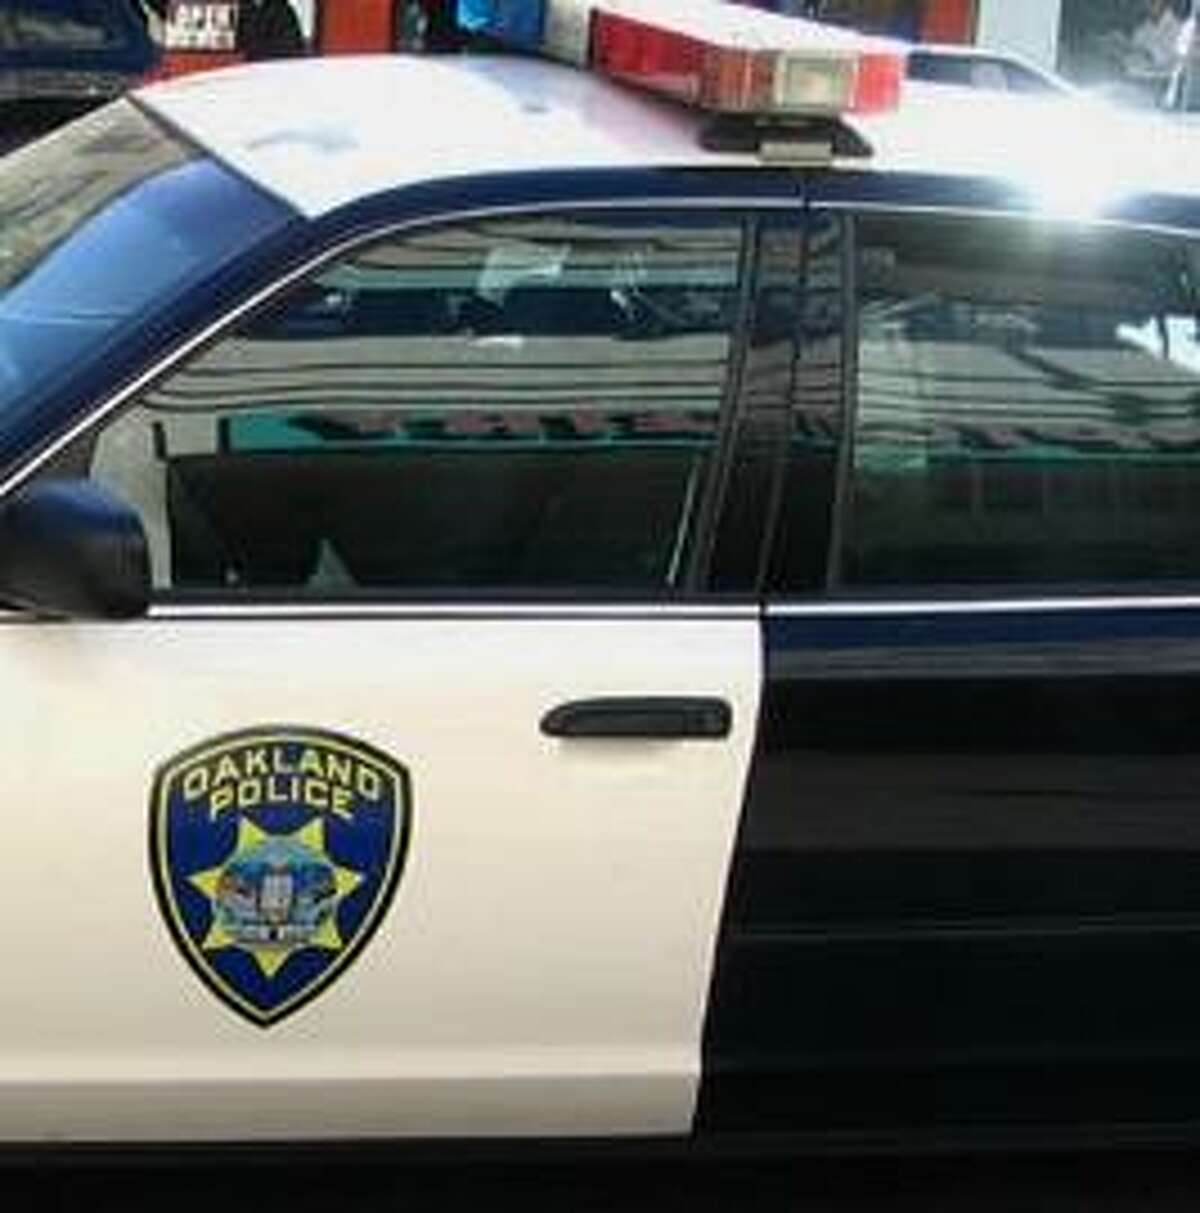 A man was shot Tuesday afternoon on International Boulevard near 51st Avenue in Oakland and died, police said.